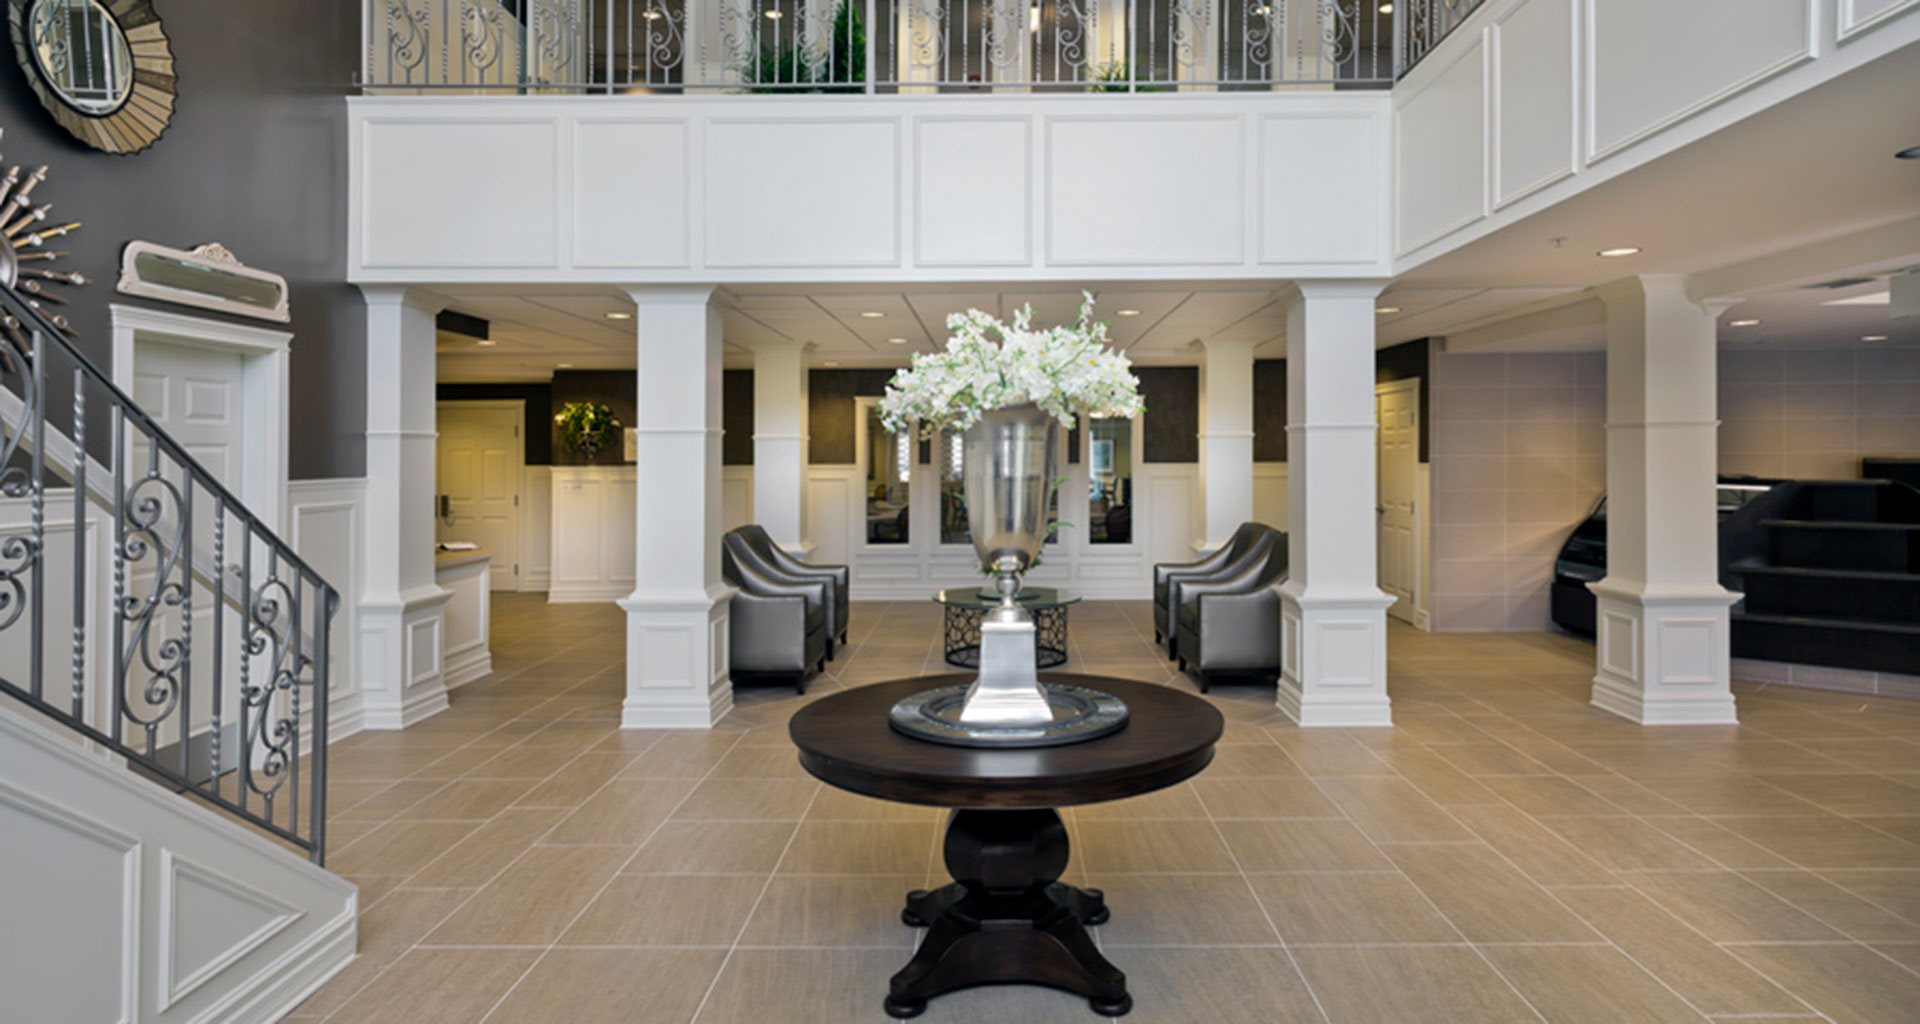 Picturesque Lobby Area at Heritage at Irene Woods, Memphis